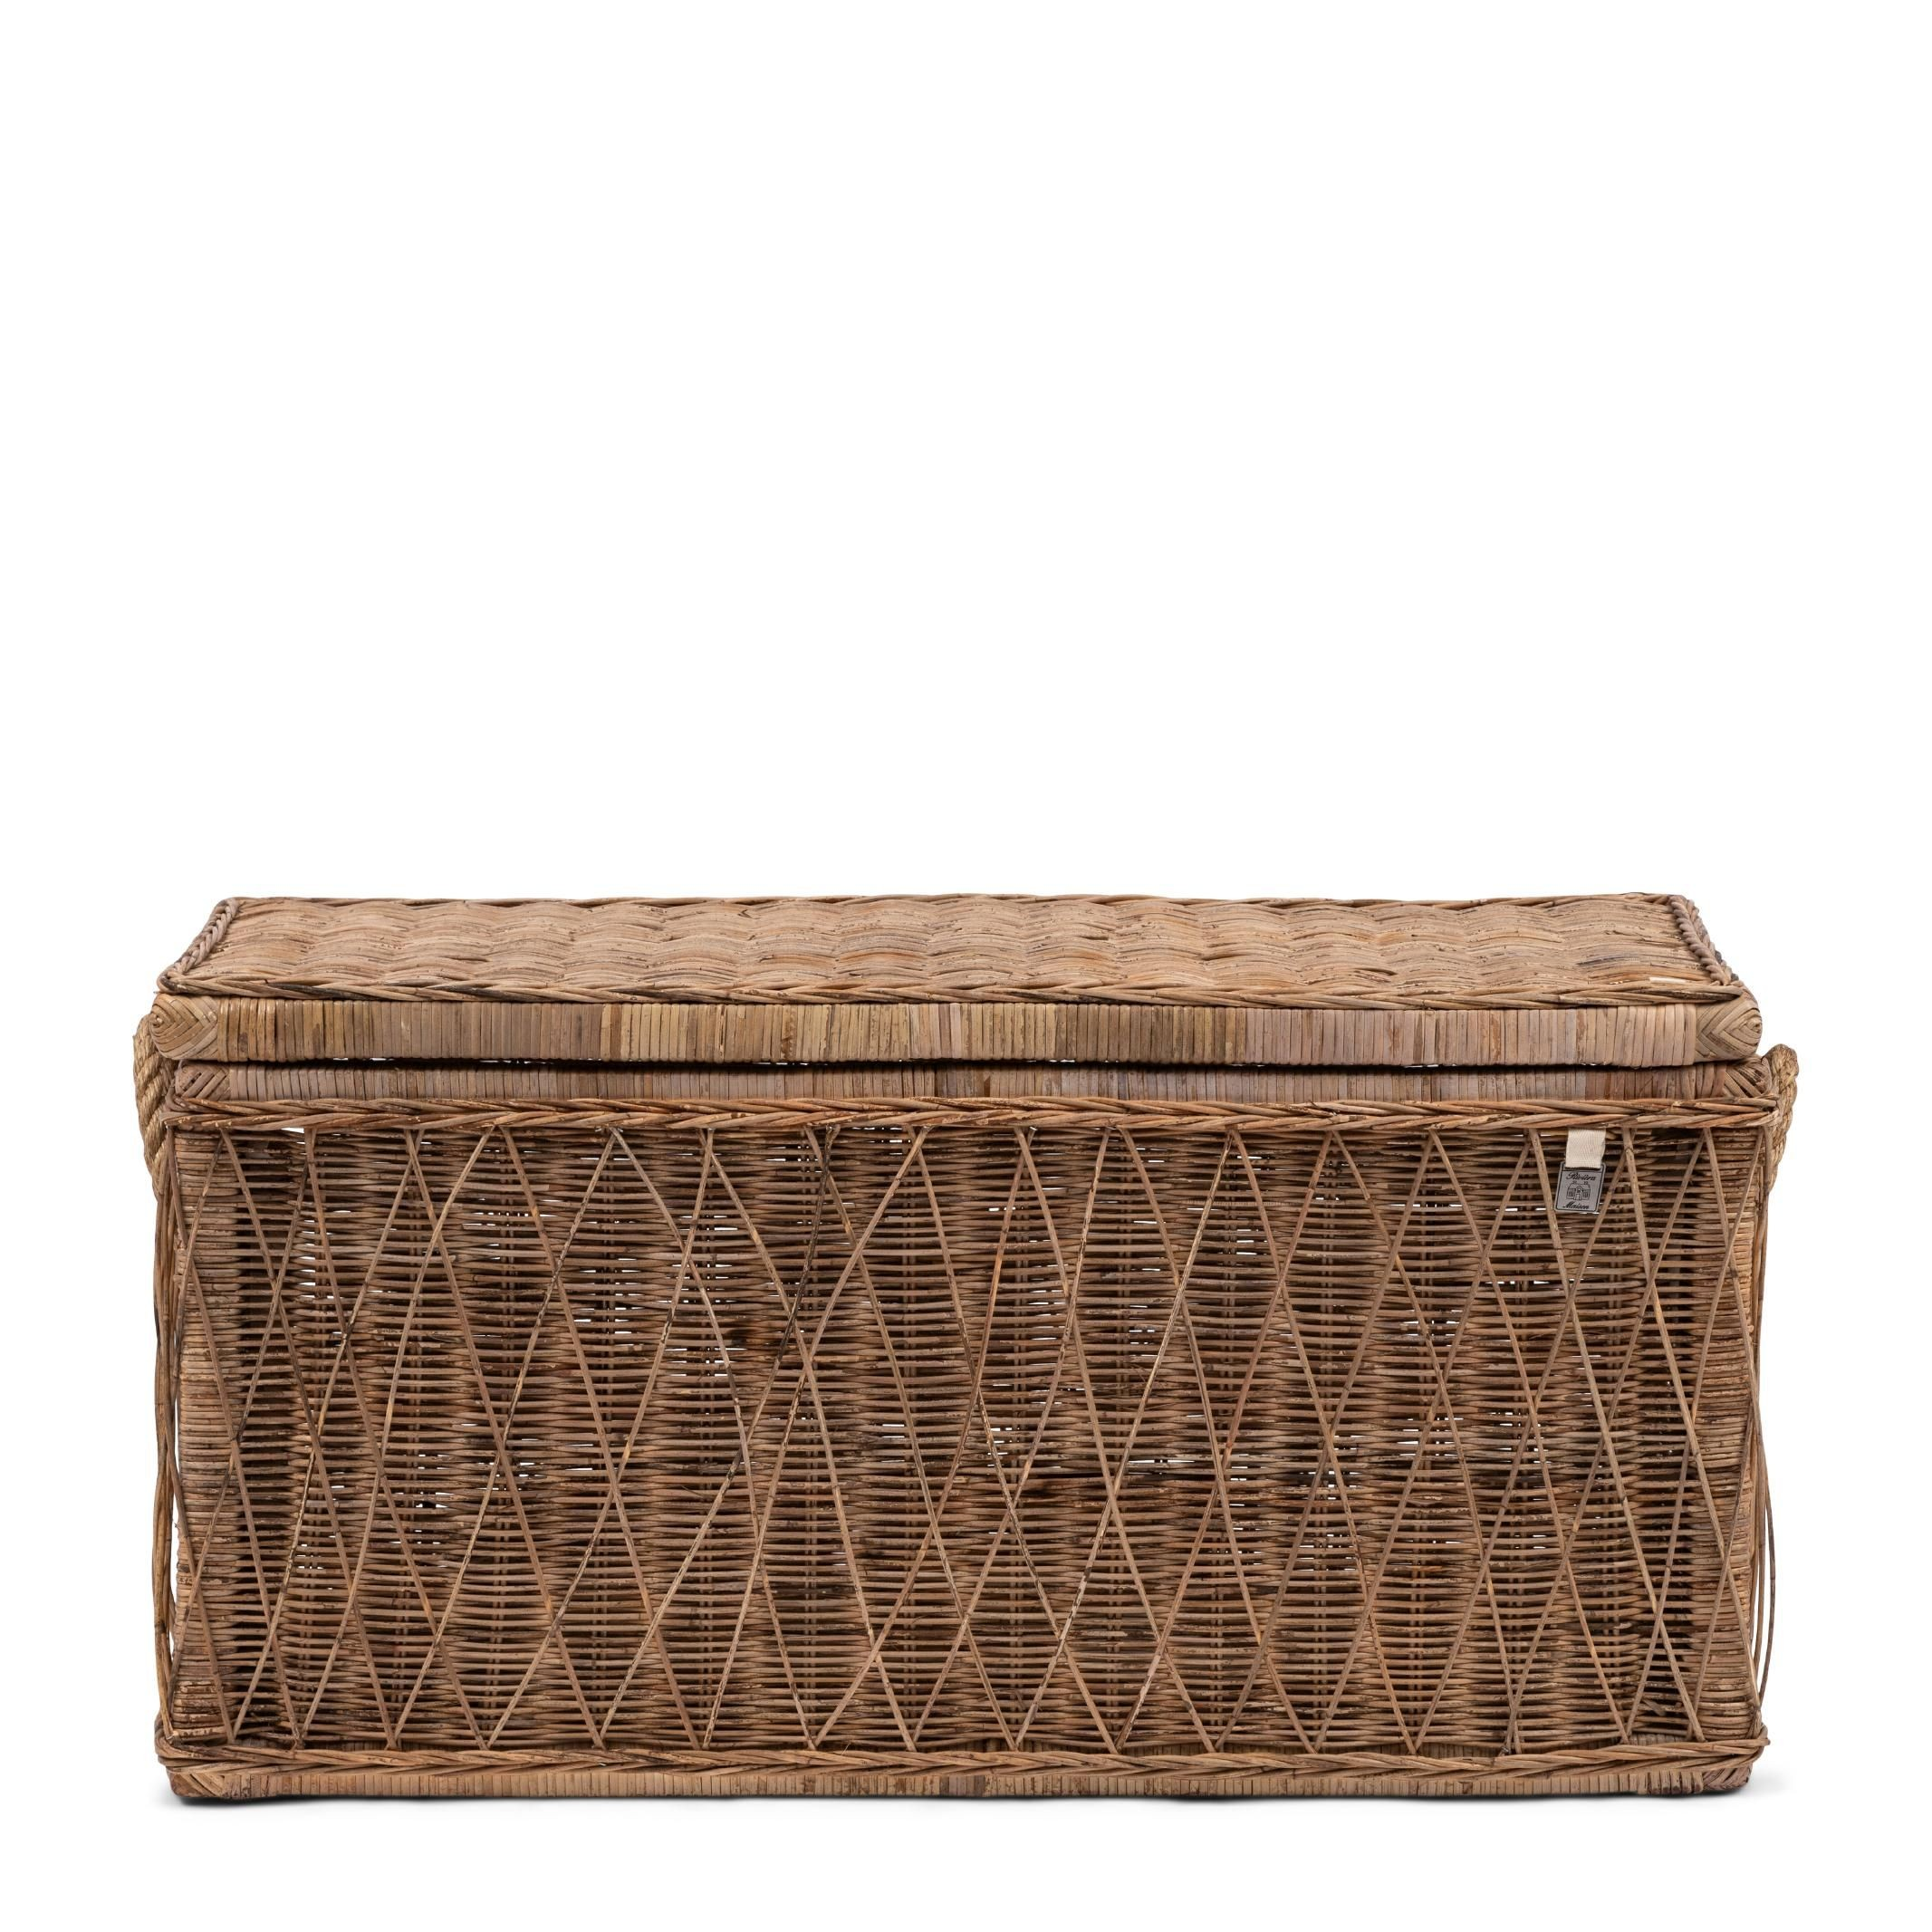 Nusa Dua Trunk Medium / Rivièra Maison